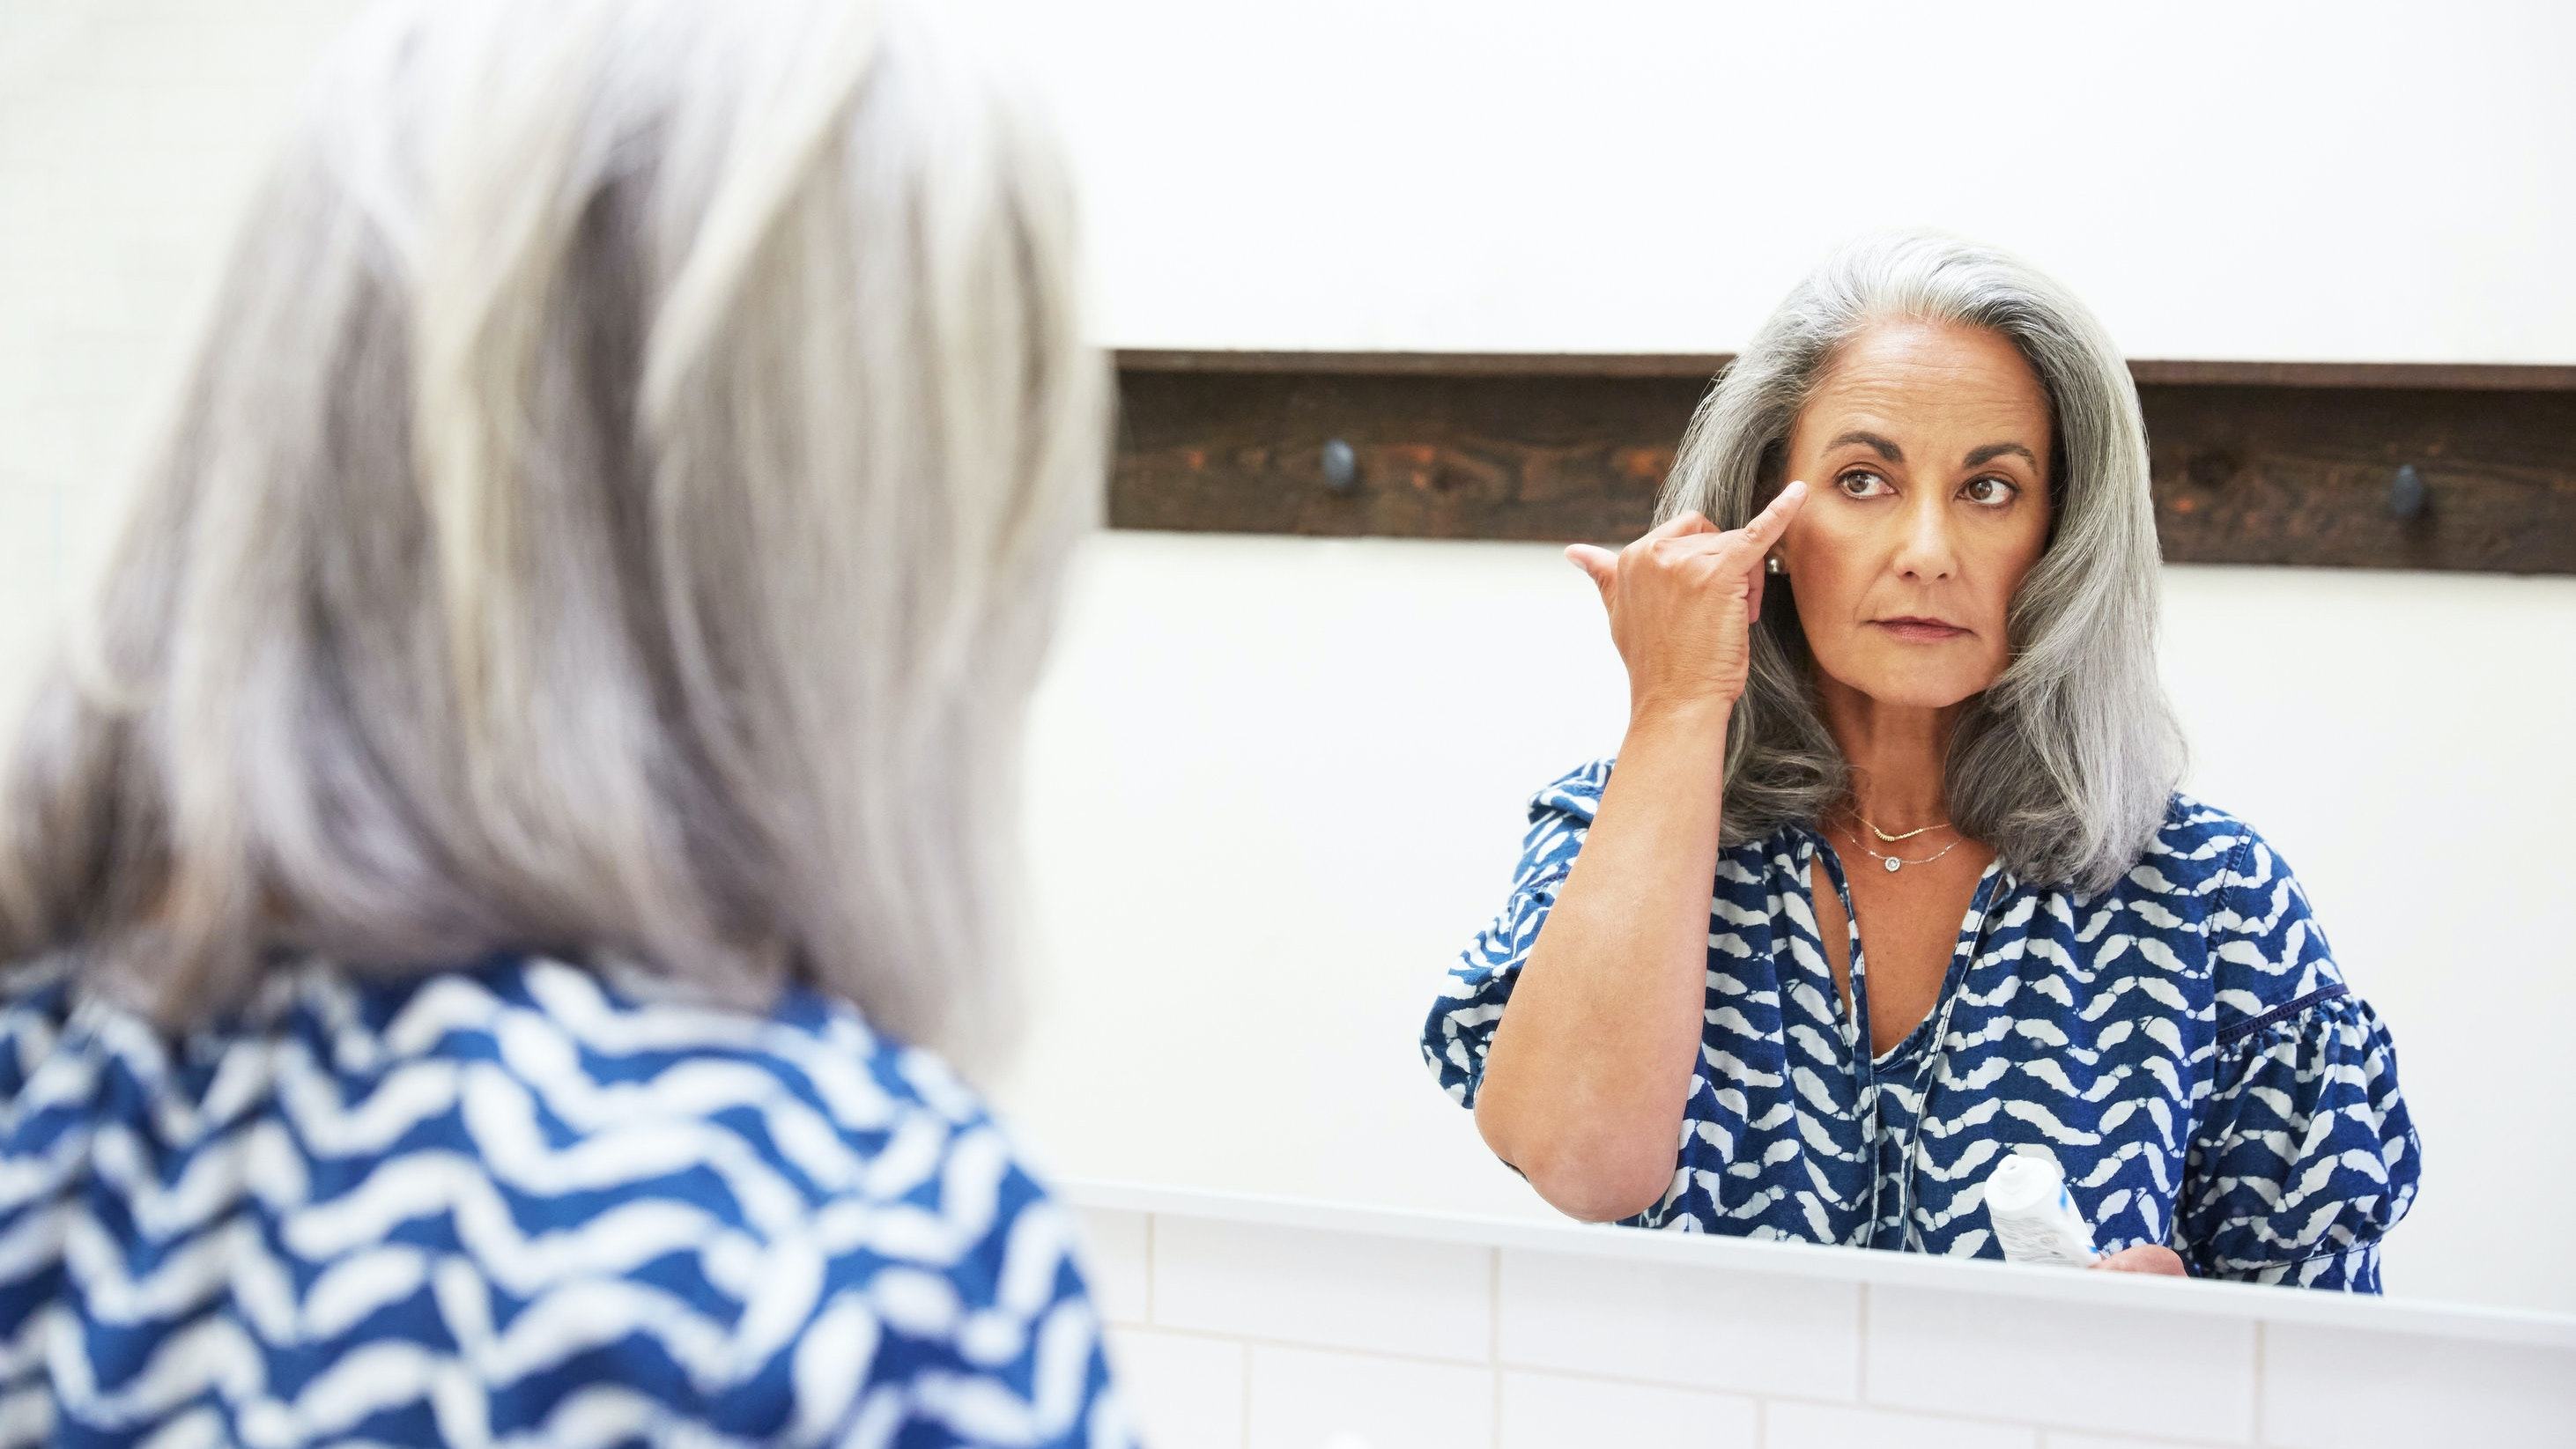 Women looks at her wrinkles in the mirror.